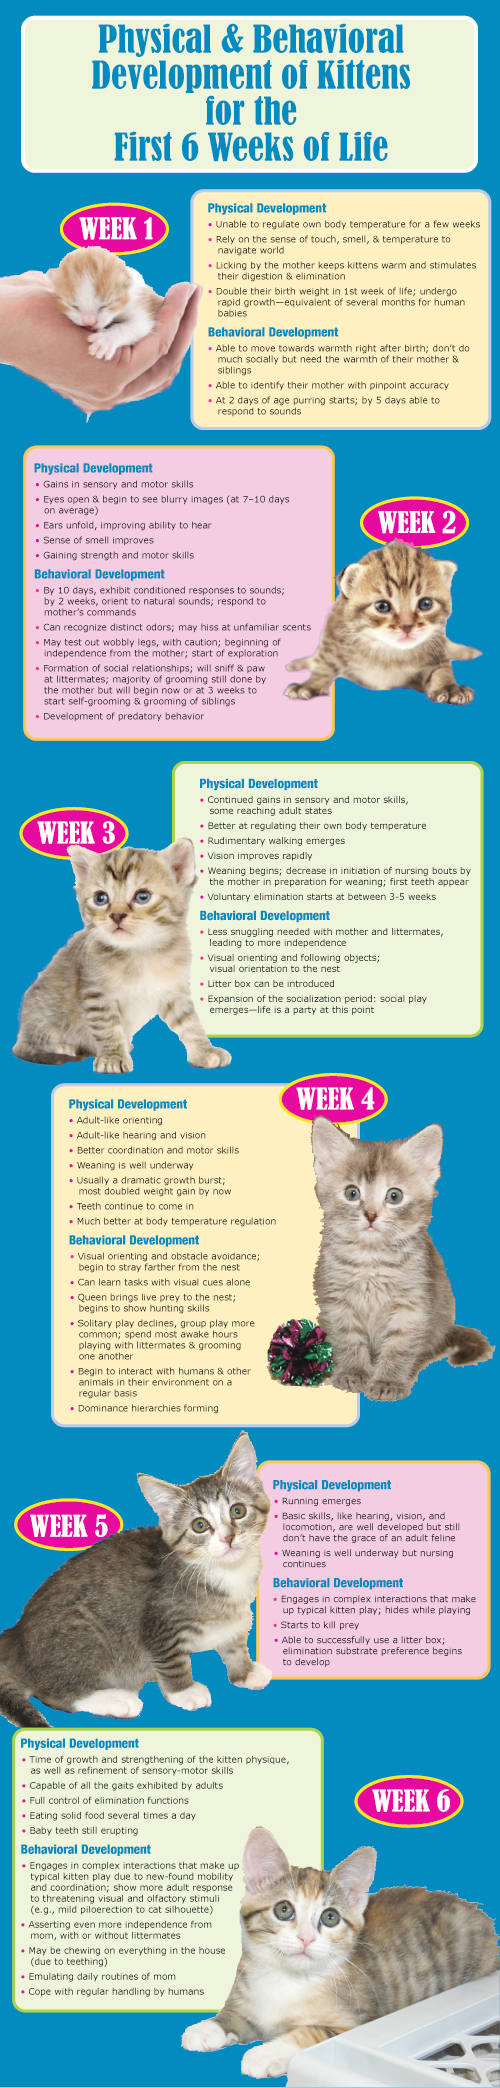 Cats And Kittens Facts Cats And Kittens Love Newborn Kittens Kitten Care Baby Cats